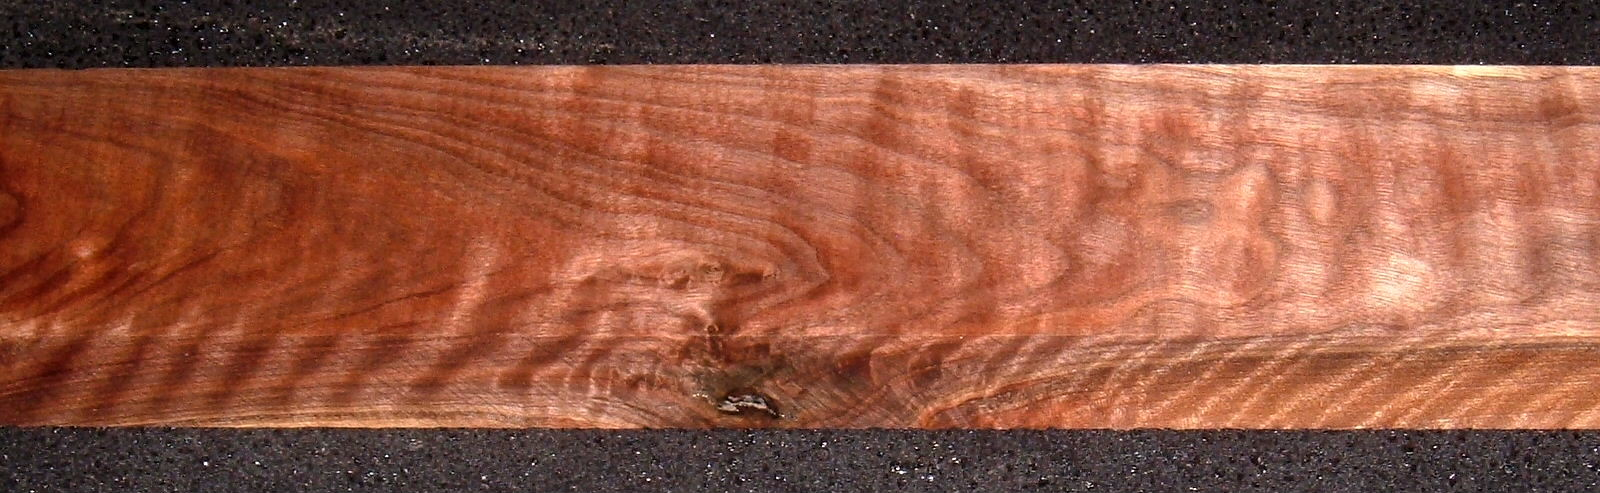 S-2475, 1-3/16x3x30, Curly Black Walnut, Wood Turning Block